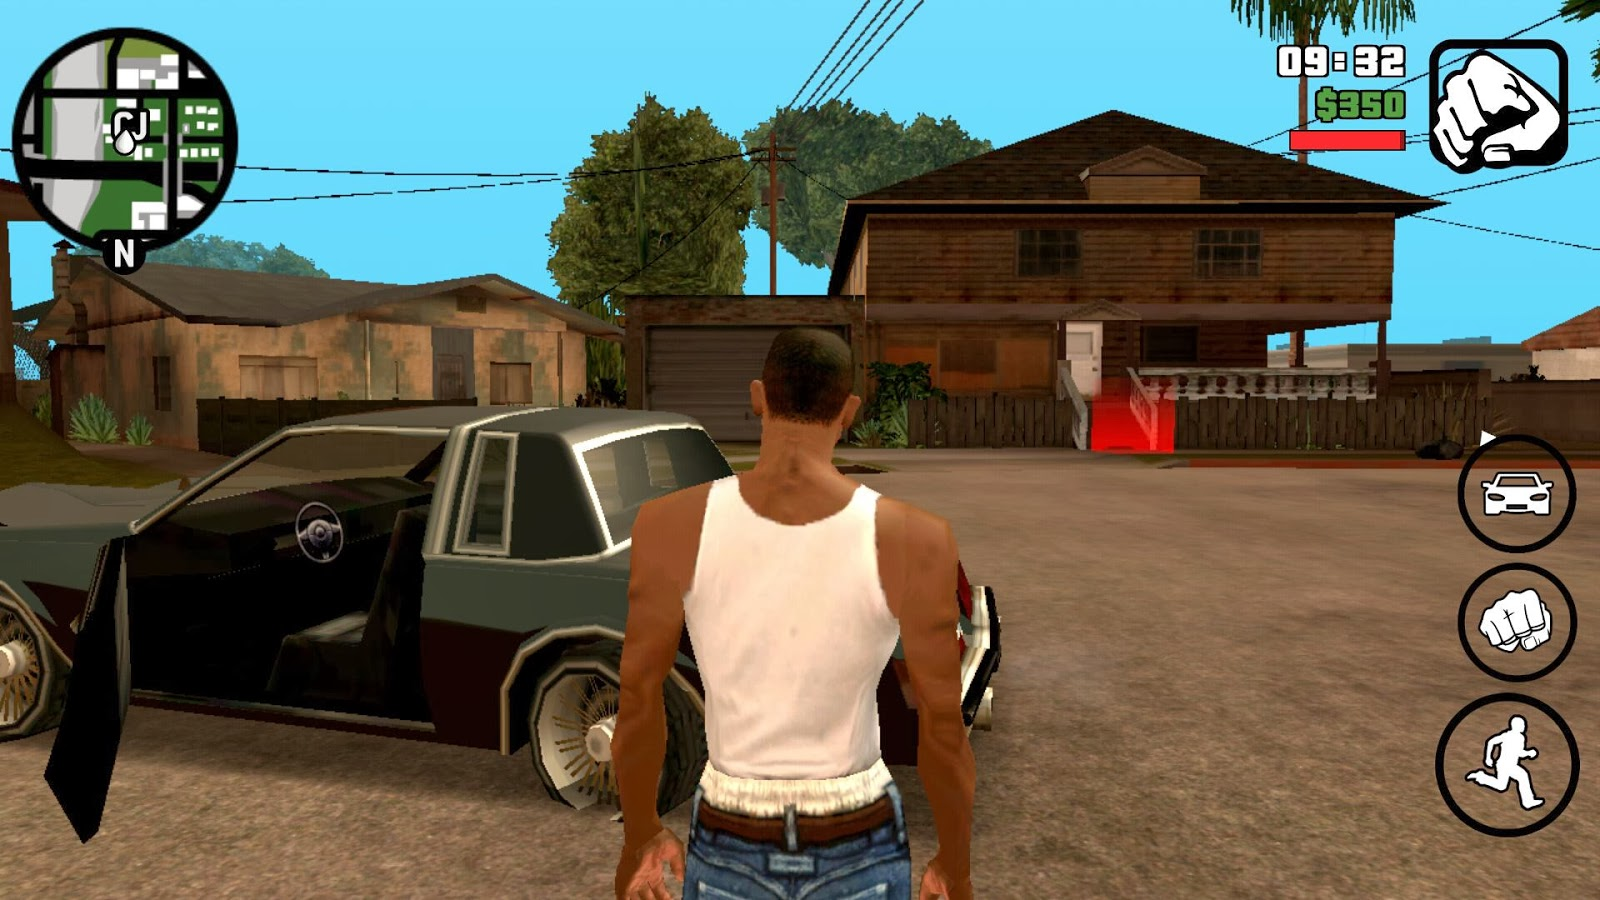 GTA San Andreas CHEAT MOD APK NO ROOT v1.03 (1.03) (Mod Unlimited Ammo